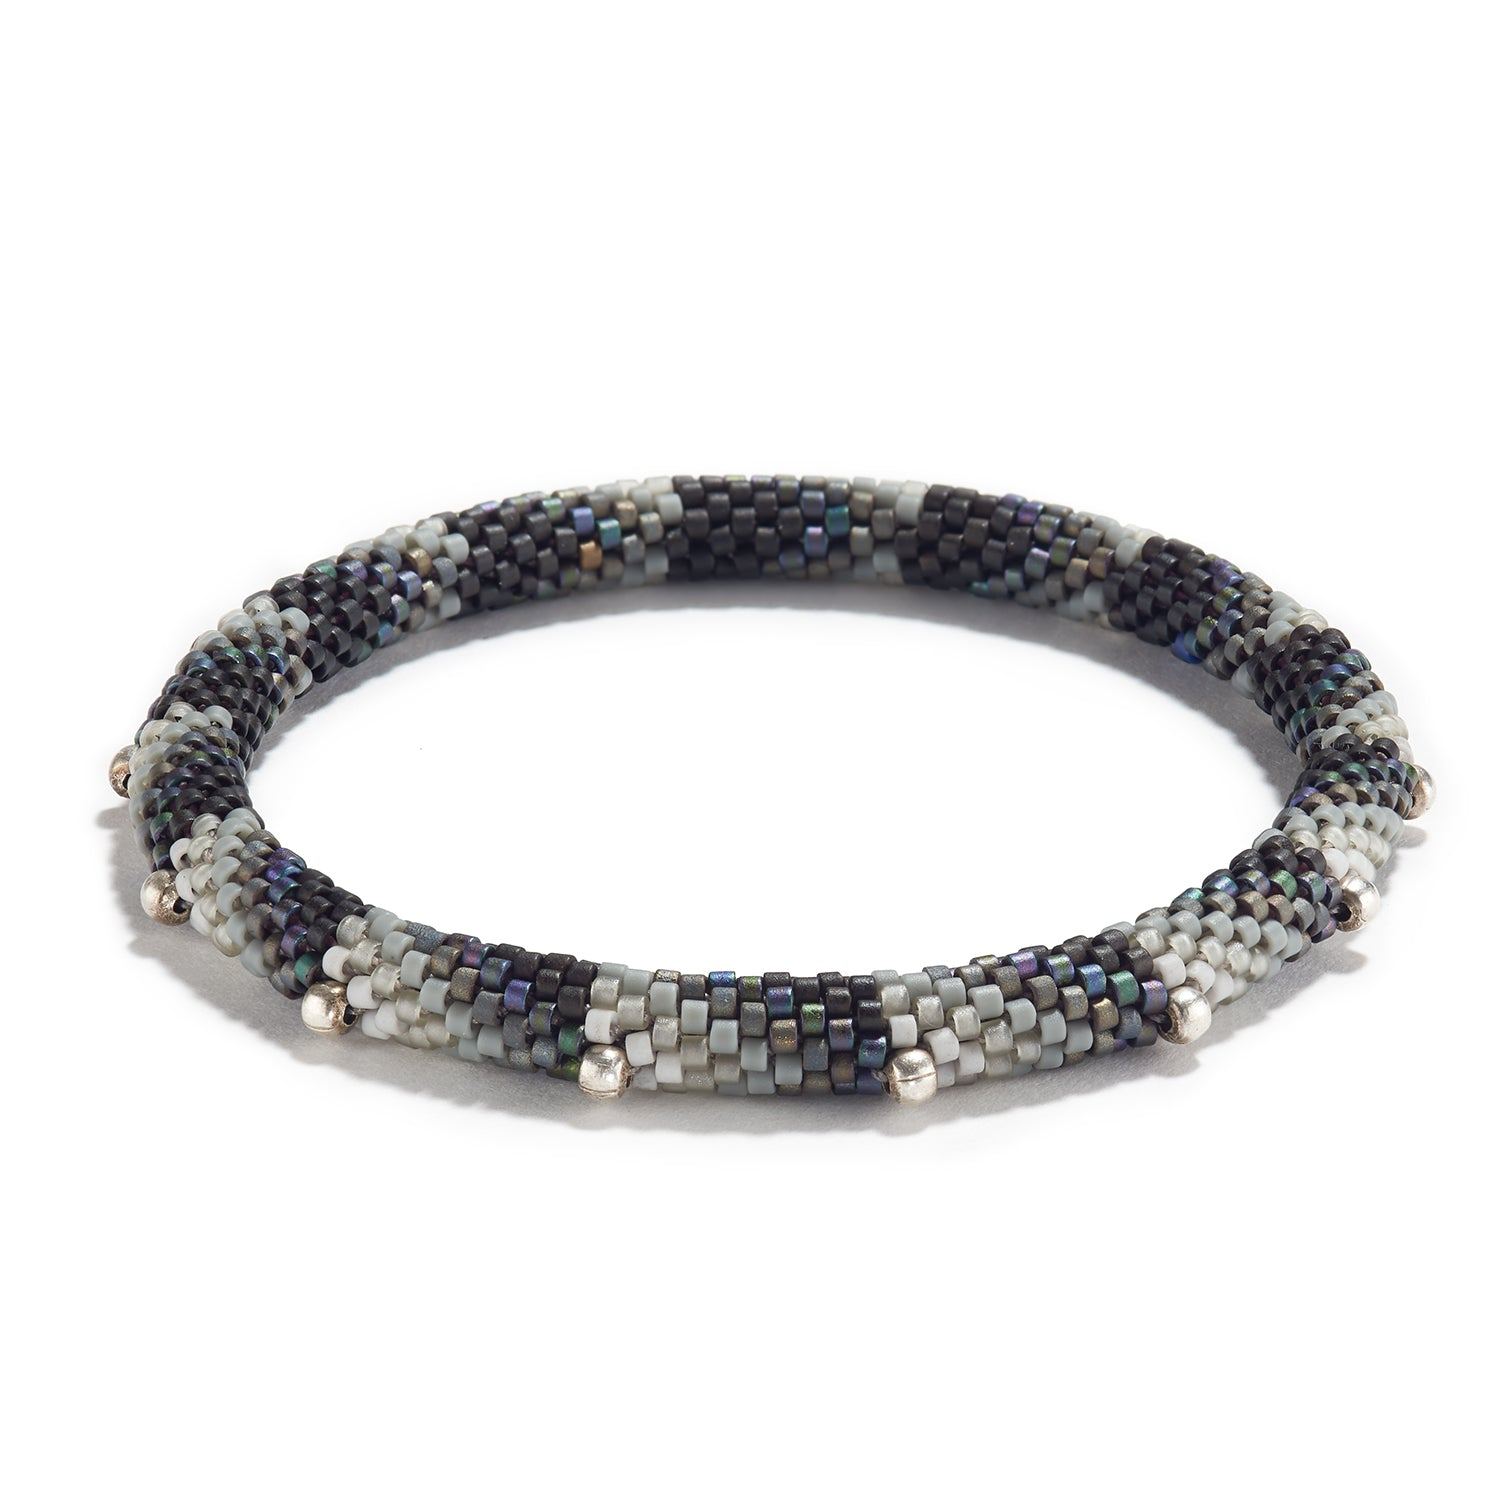 'Points' Pattern Bracelet with Silver